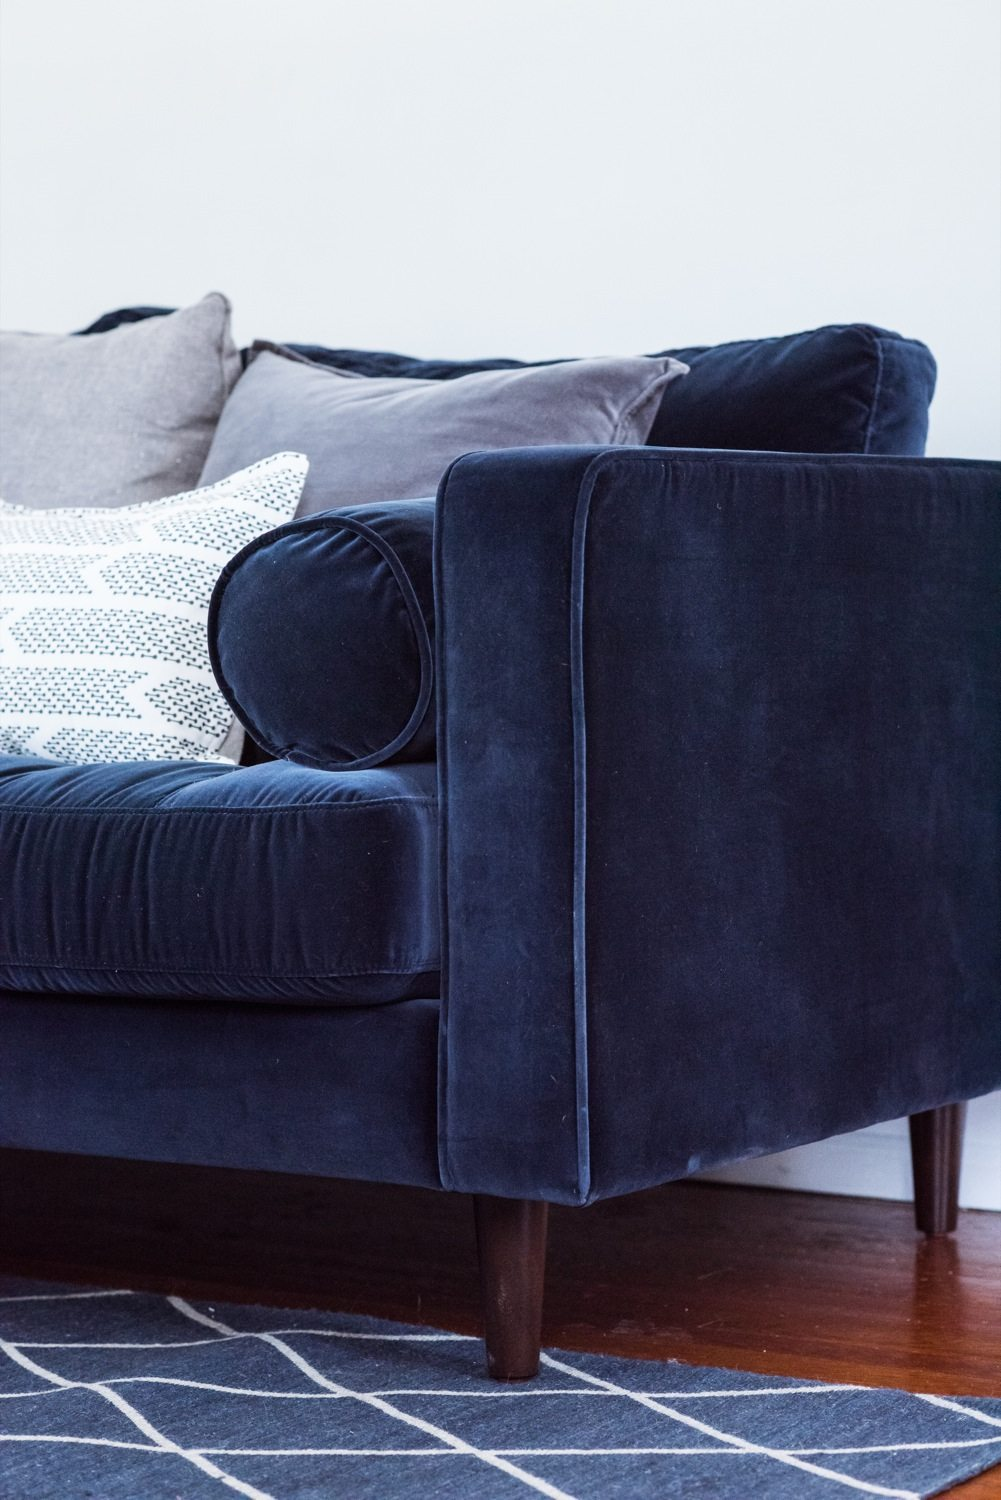 Big Sofa Occasion A Living Room Update Our New Velvet Sofa The Sweetest Occasion